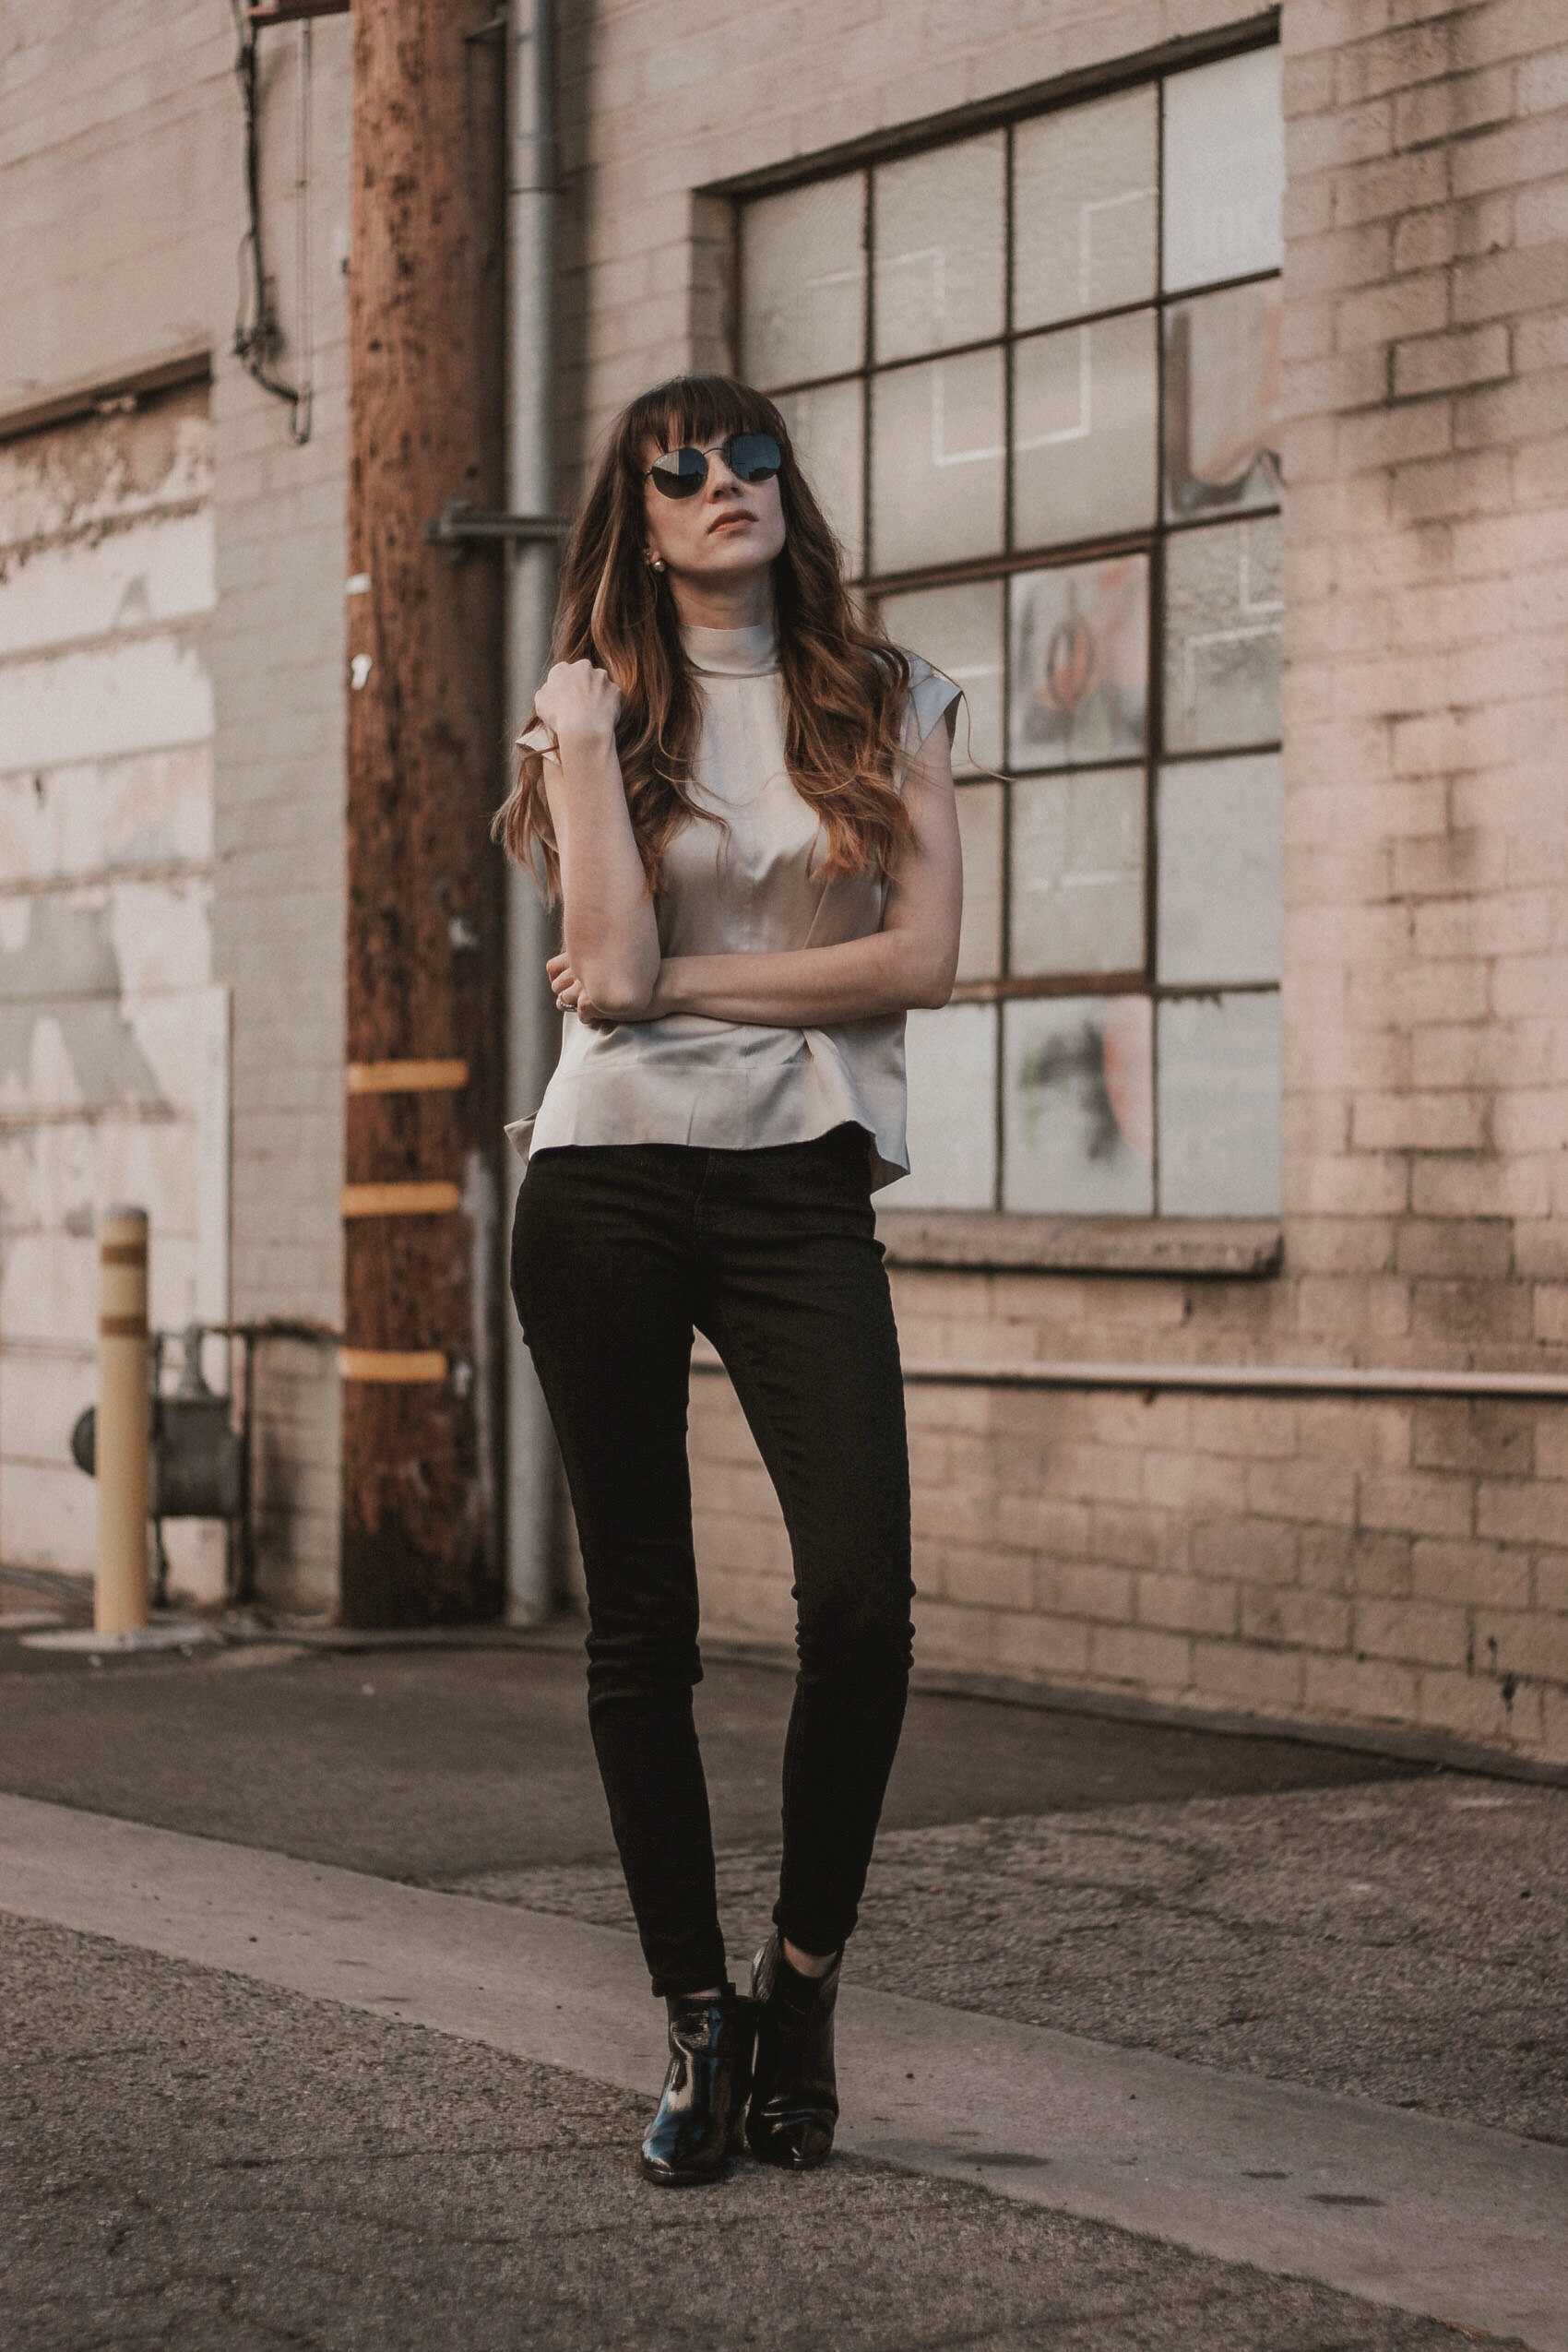 2019 goals - Everlane Silk Blouse, Everlane High Waist Authentic Stretch Skinny Jeans, Marc Fisher Booties